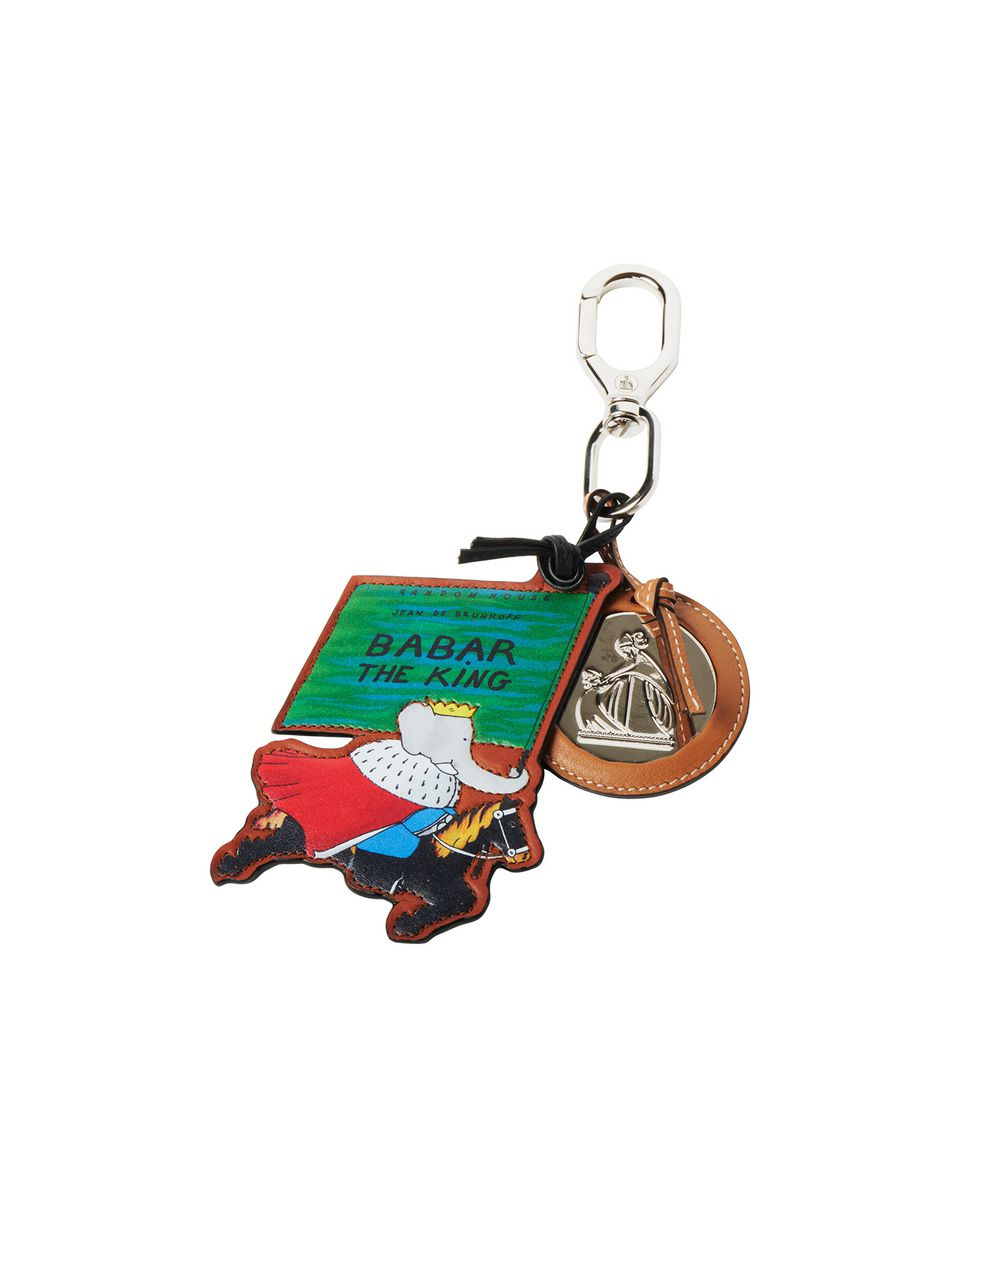 LEATHER BABAR THE KING KEY RING - Lanvin